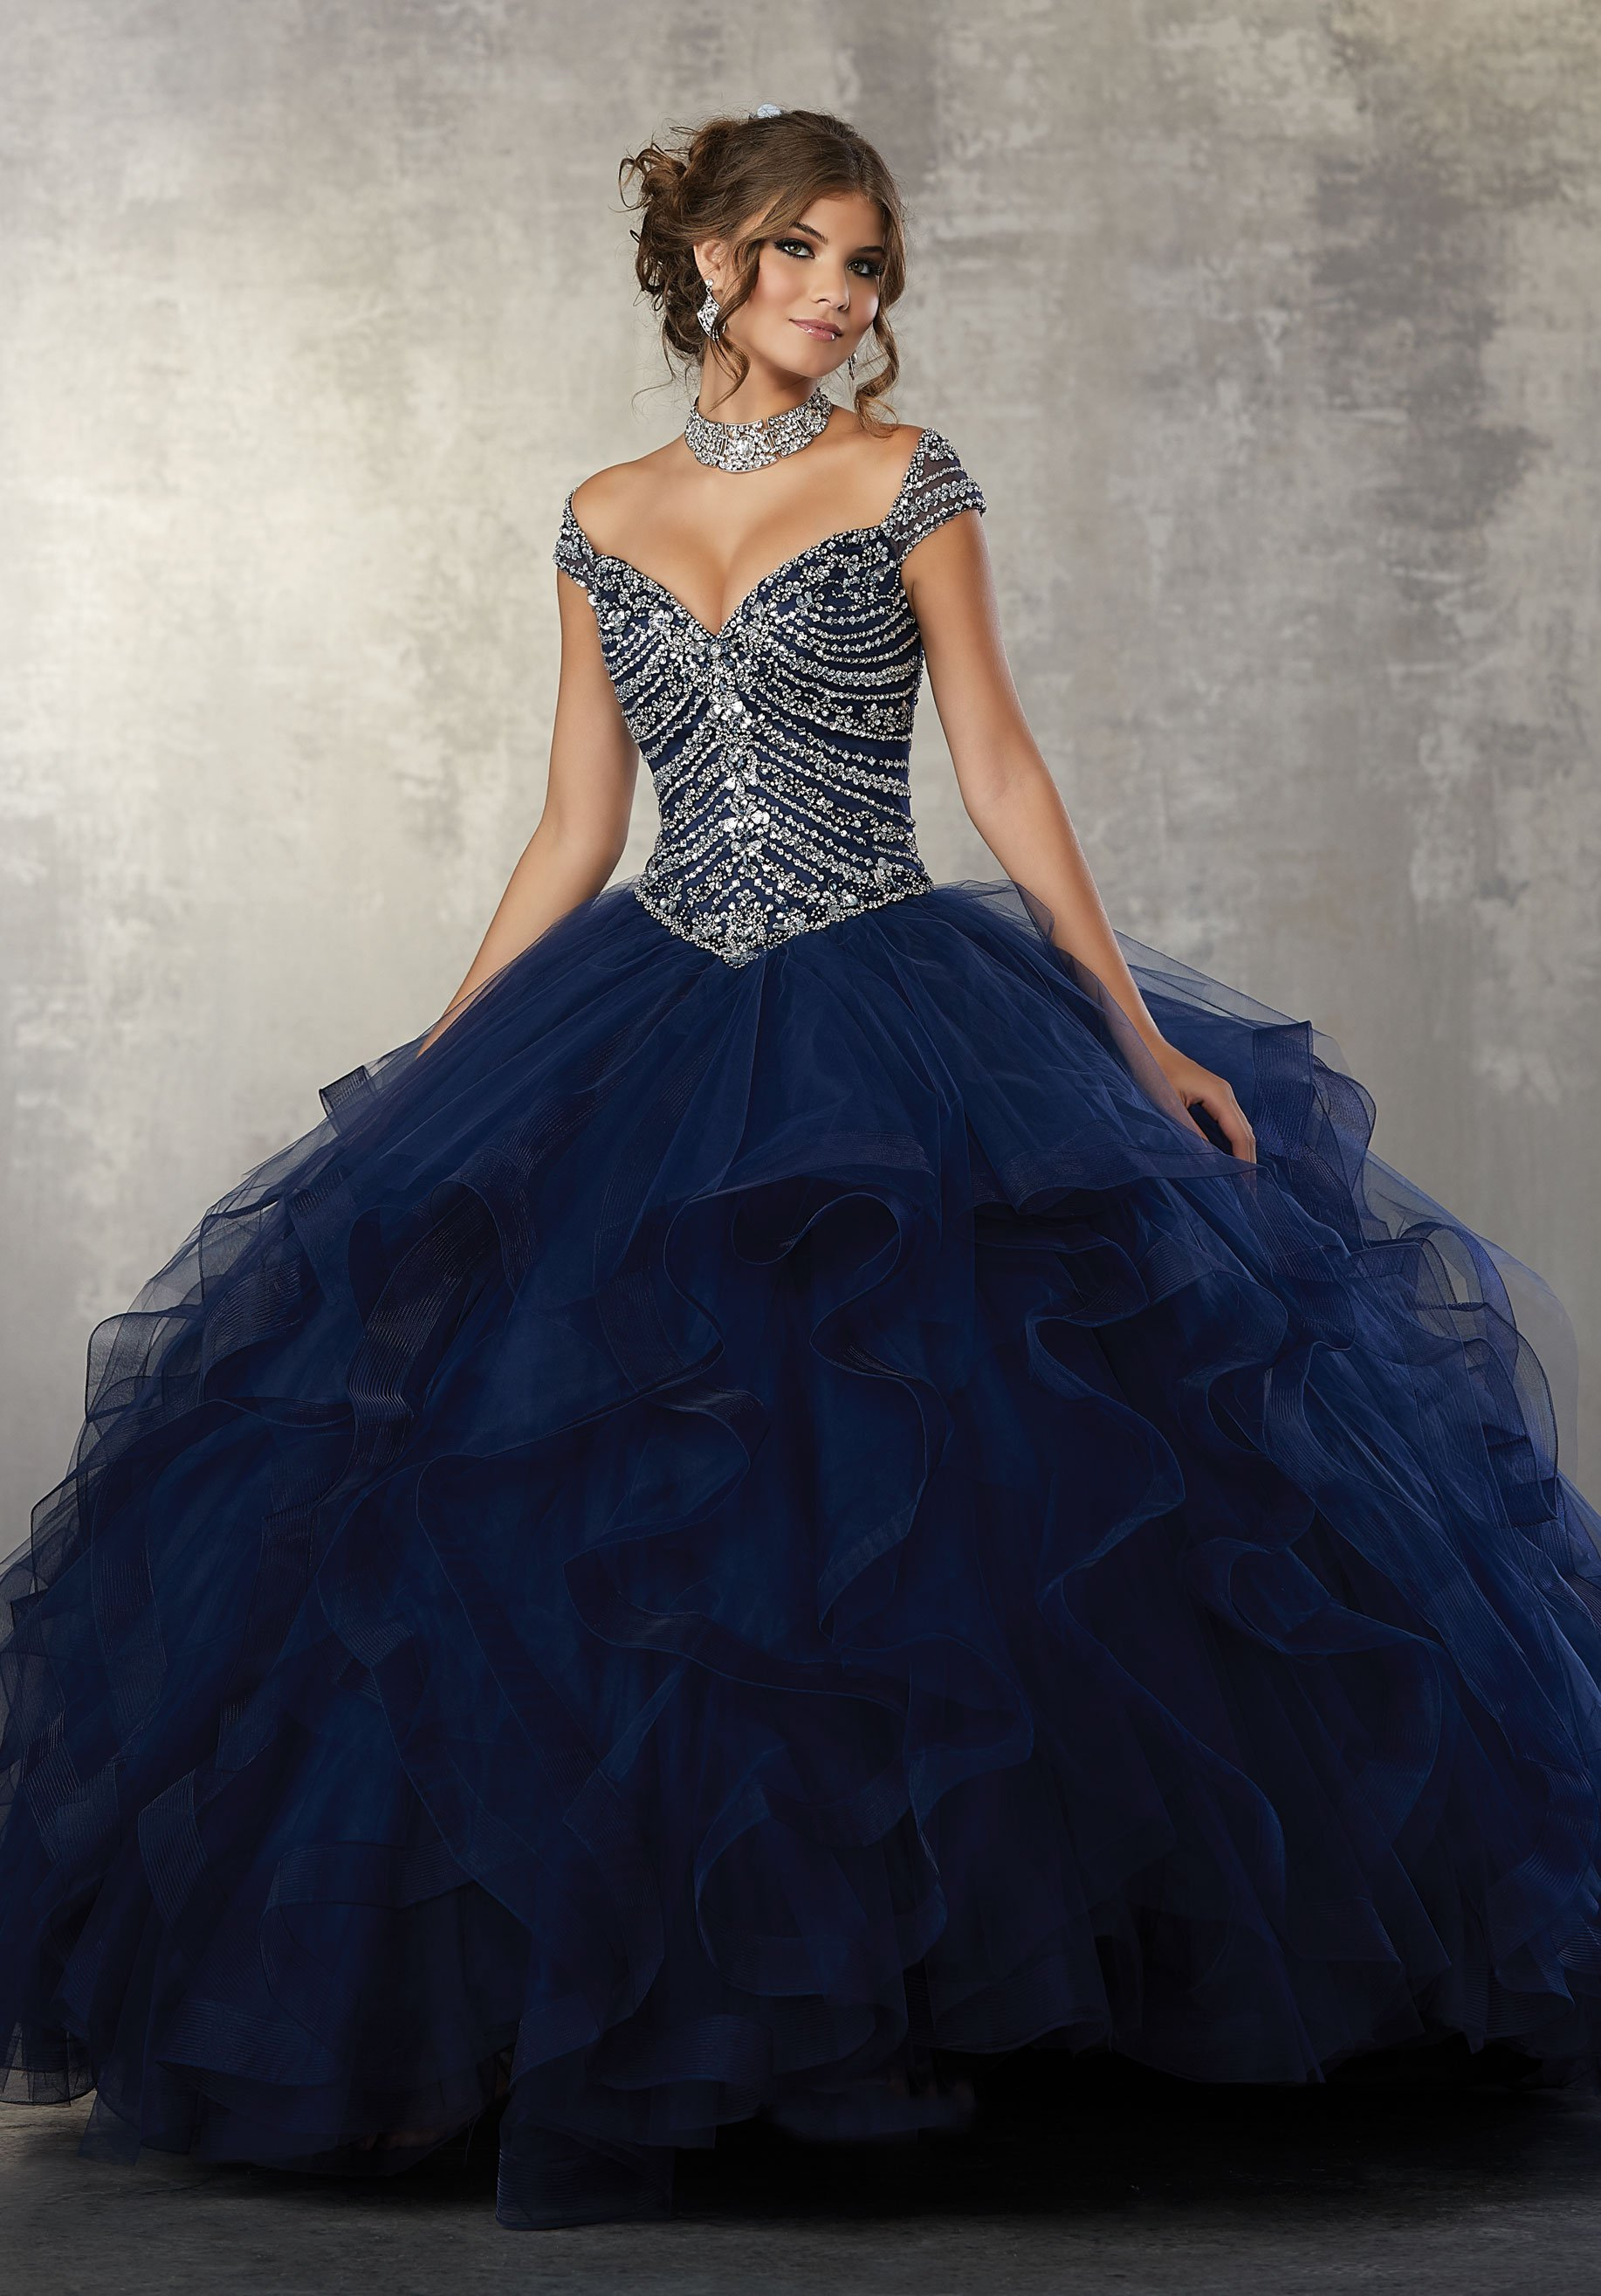 54f0922d01e Off the Shoulder Quinceanera Dress by Mori Lee Vizcaya 89162 ...